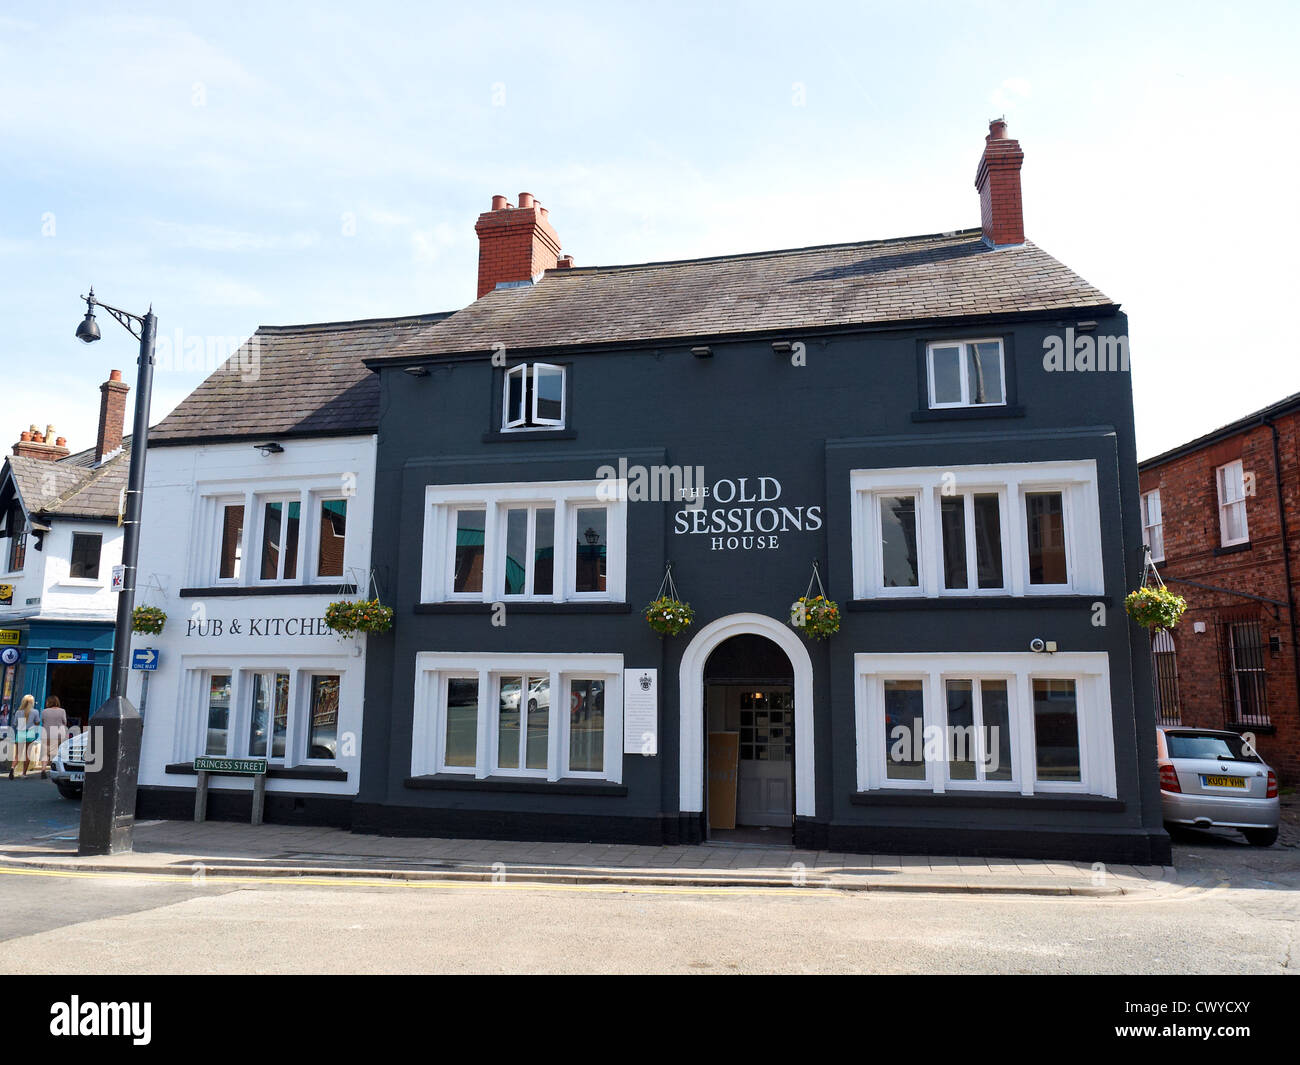 The Old Sessions House restaurant in Knutsford Cheshire UK - Stock Image